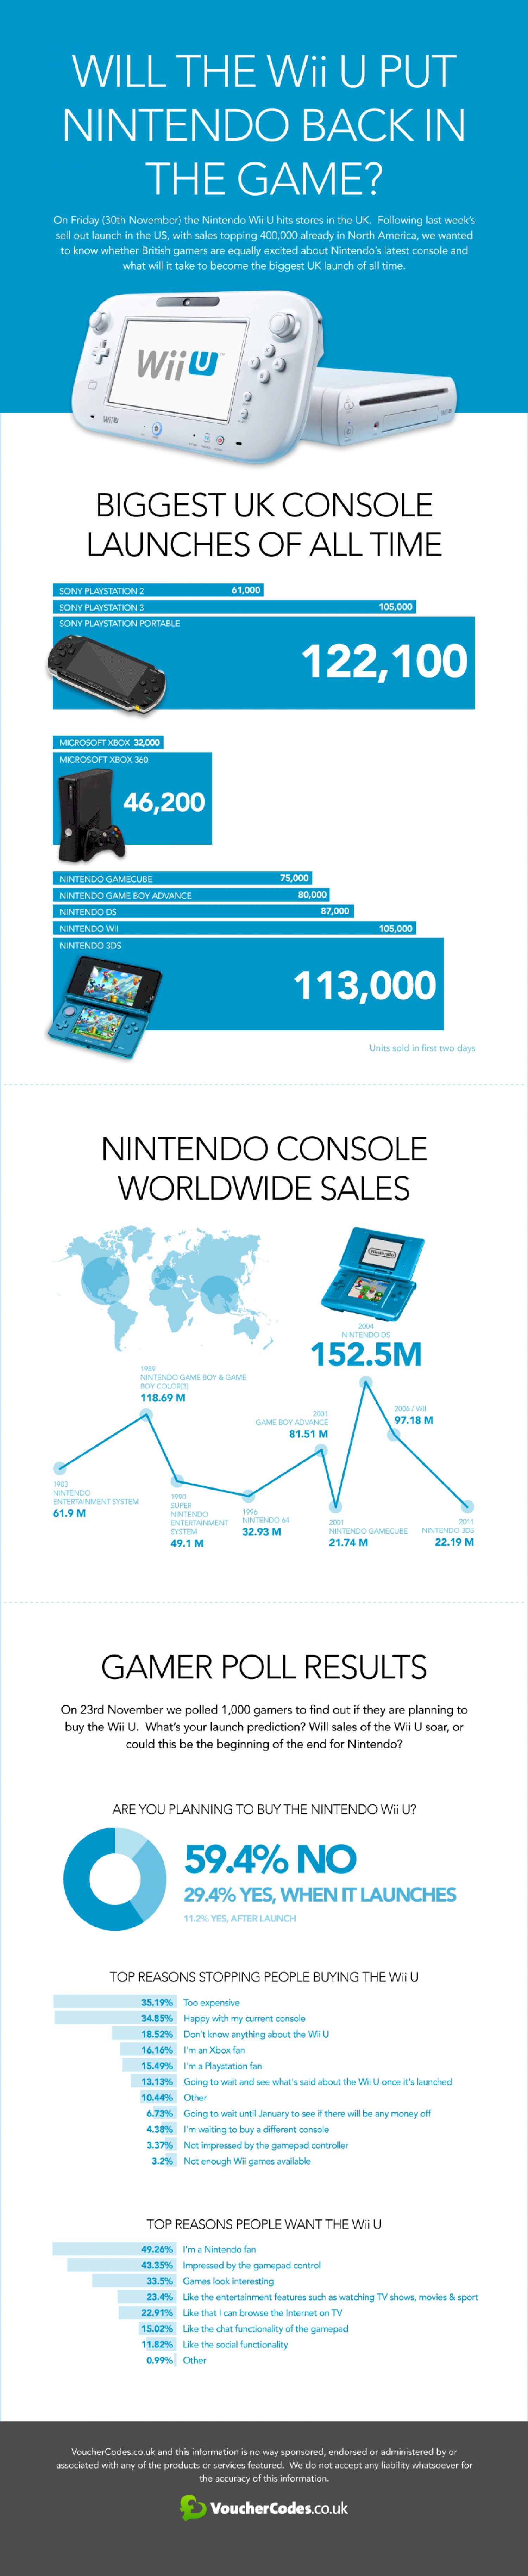 Wii U Infographic Infographic